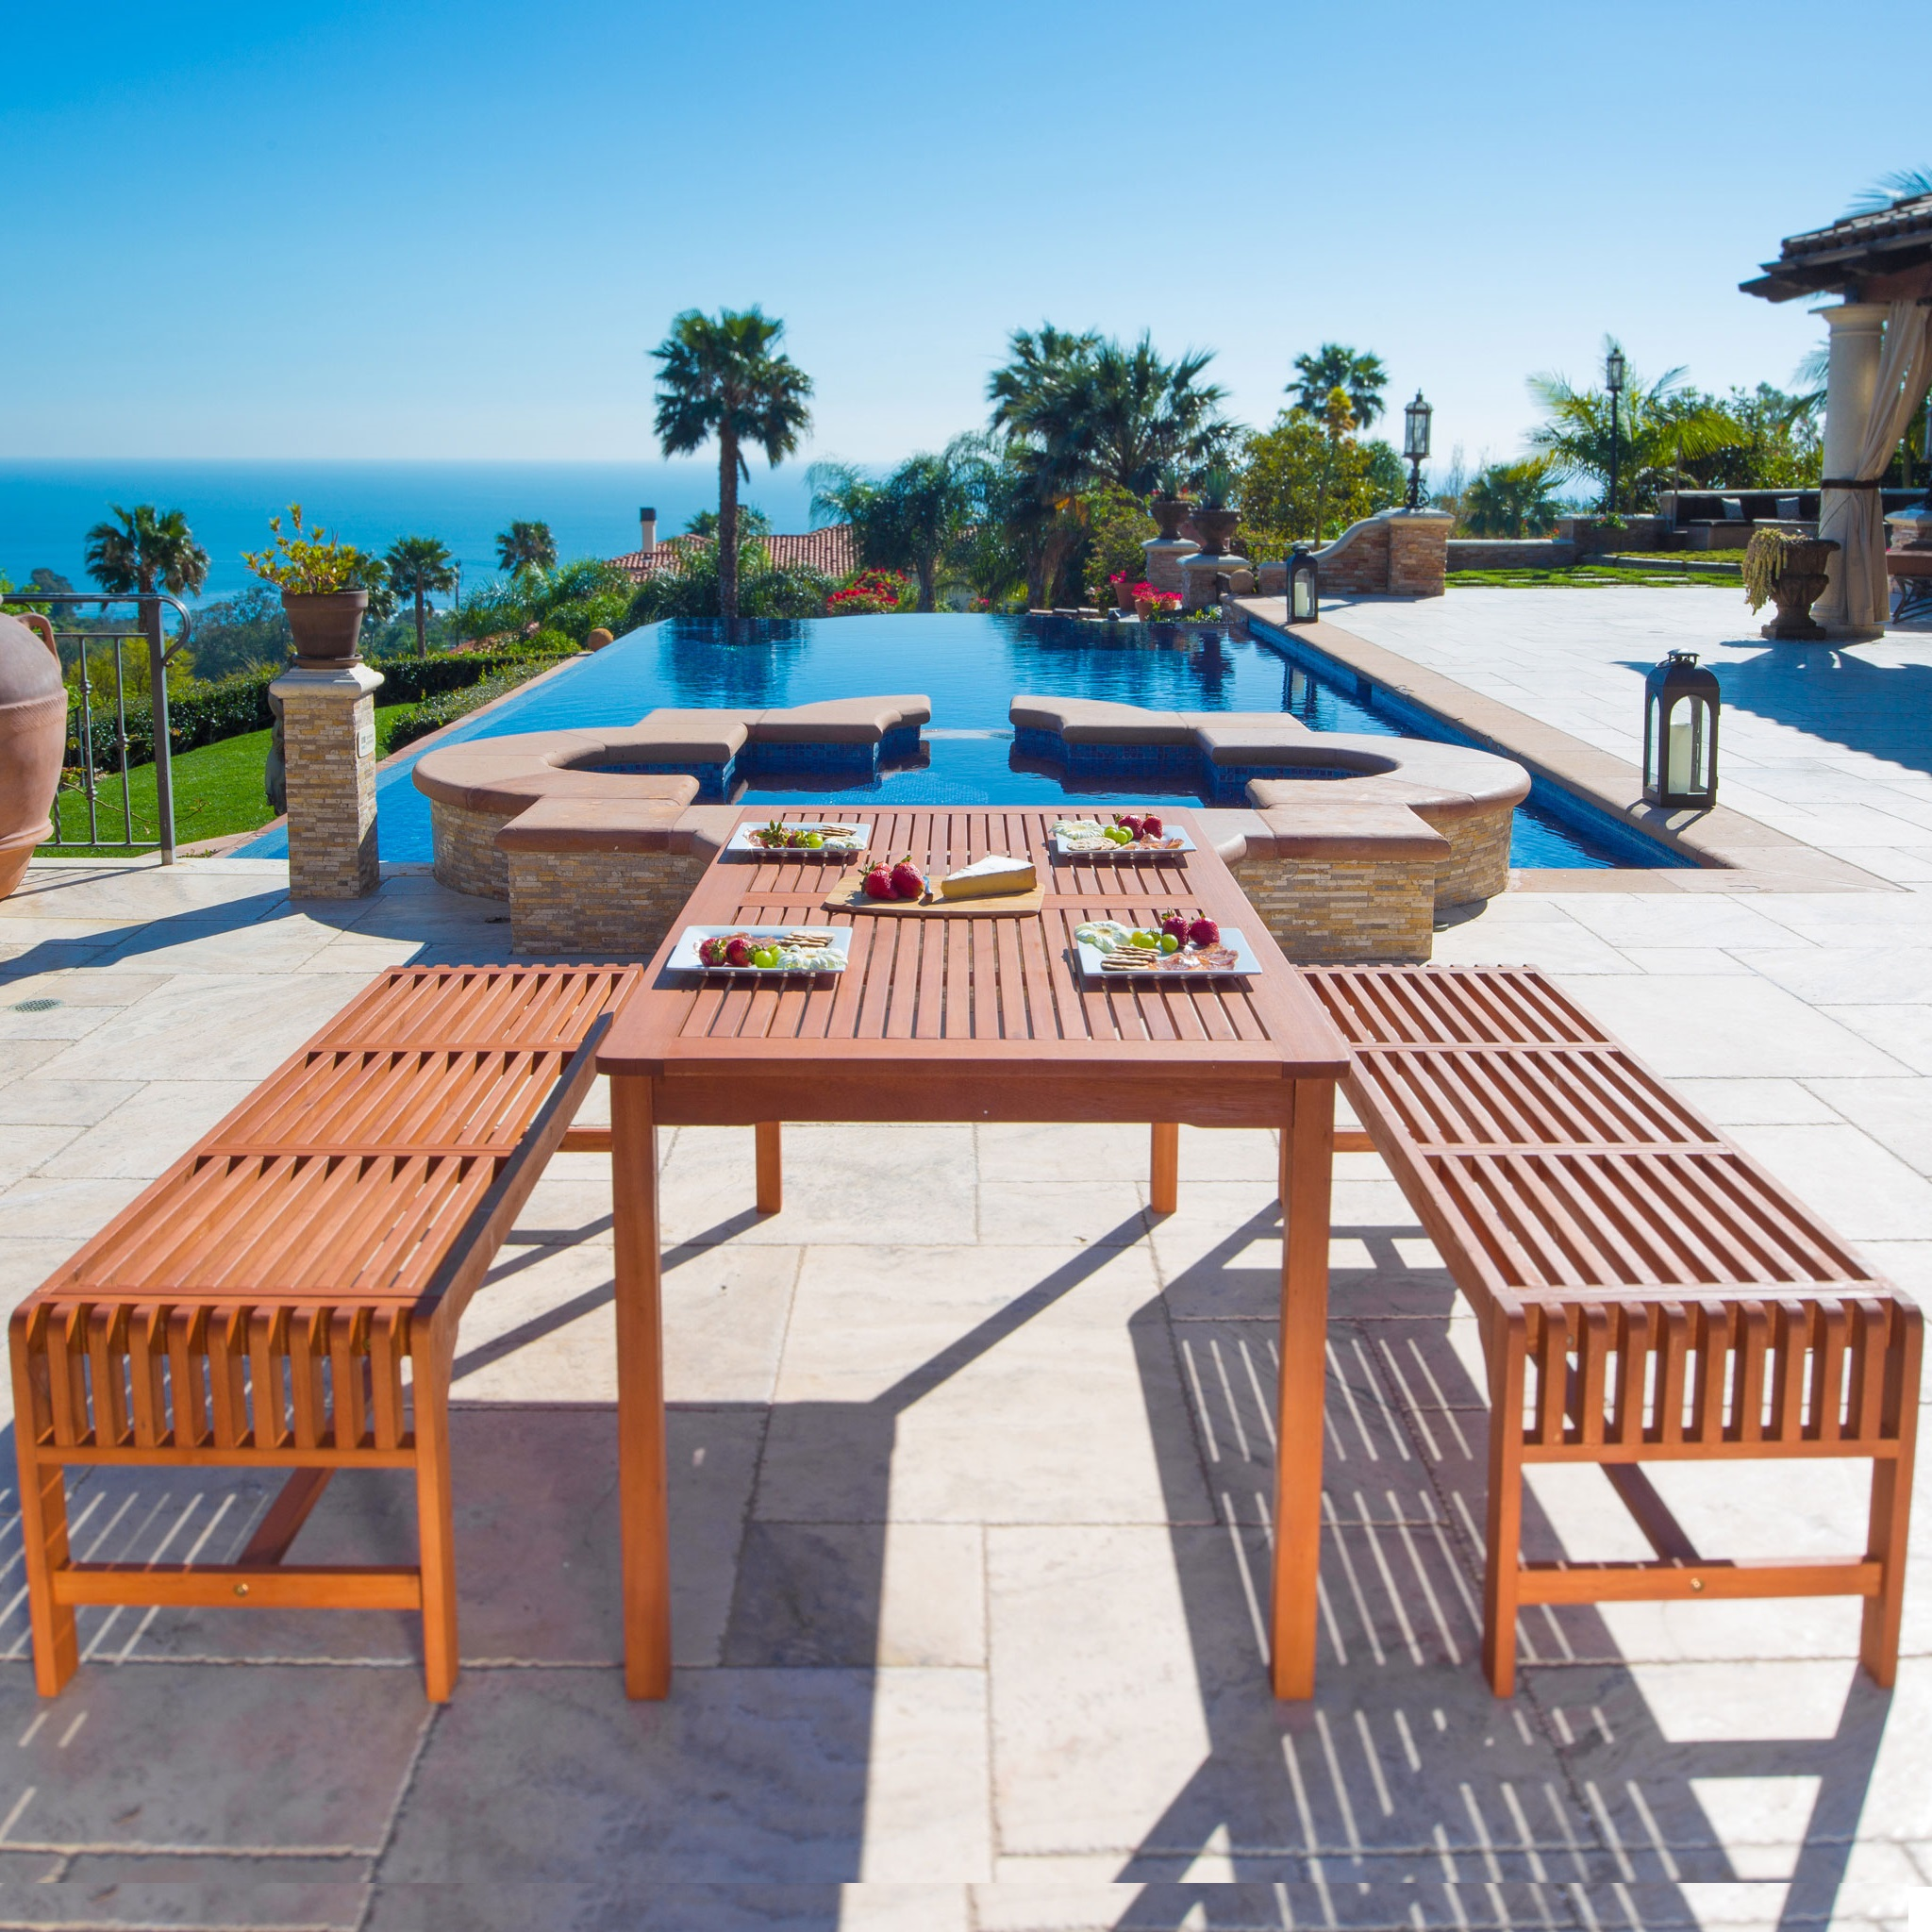 Malibu Outdoor 3-piece Wood Patio Dining Set with Backless Bench